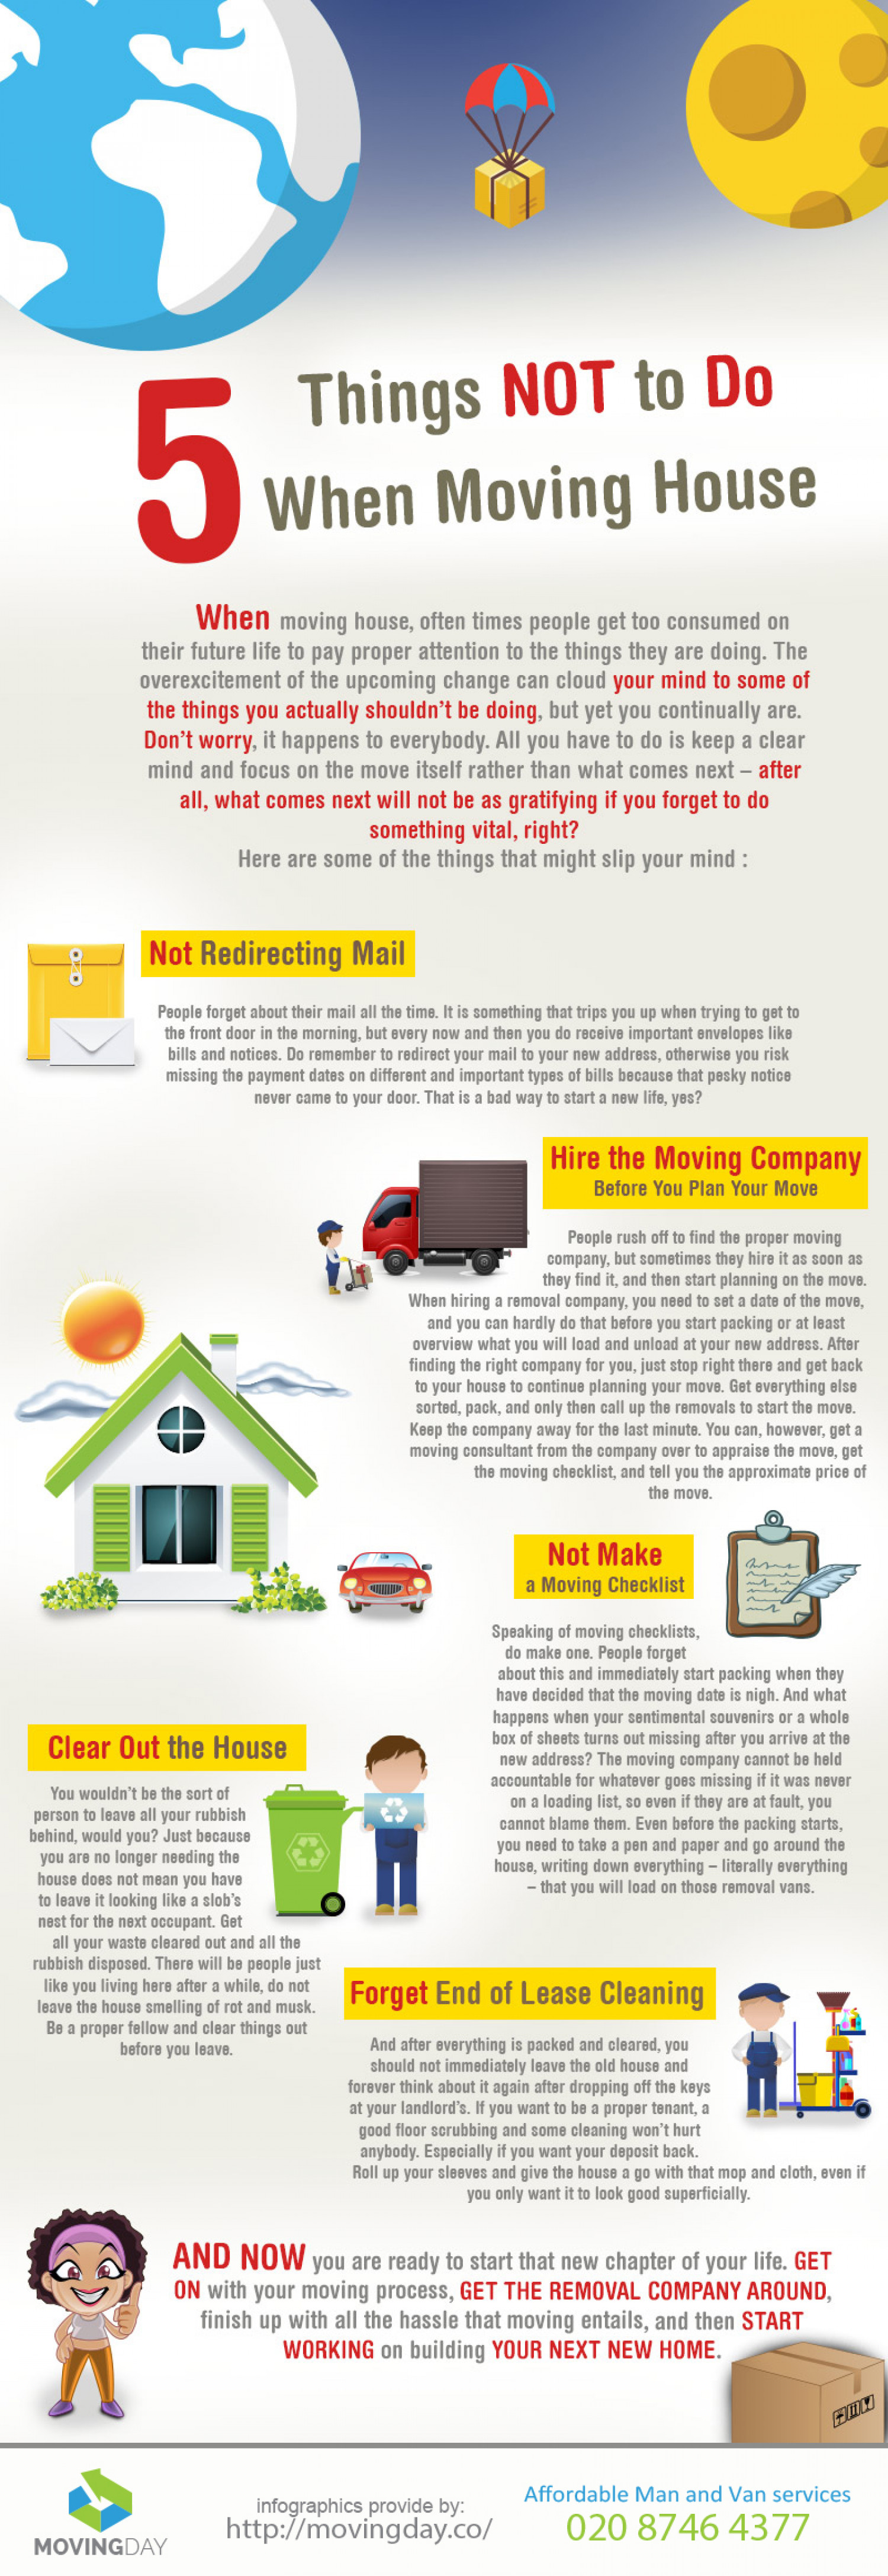 5 Things NOT to Do When Moving House Infographic